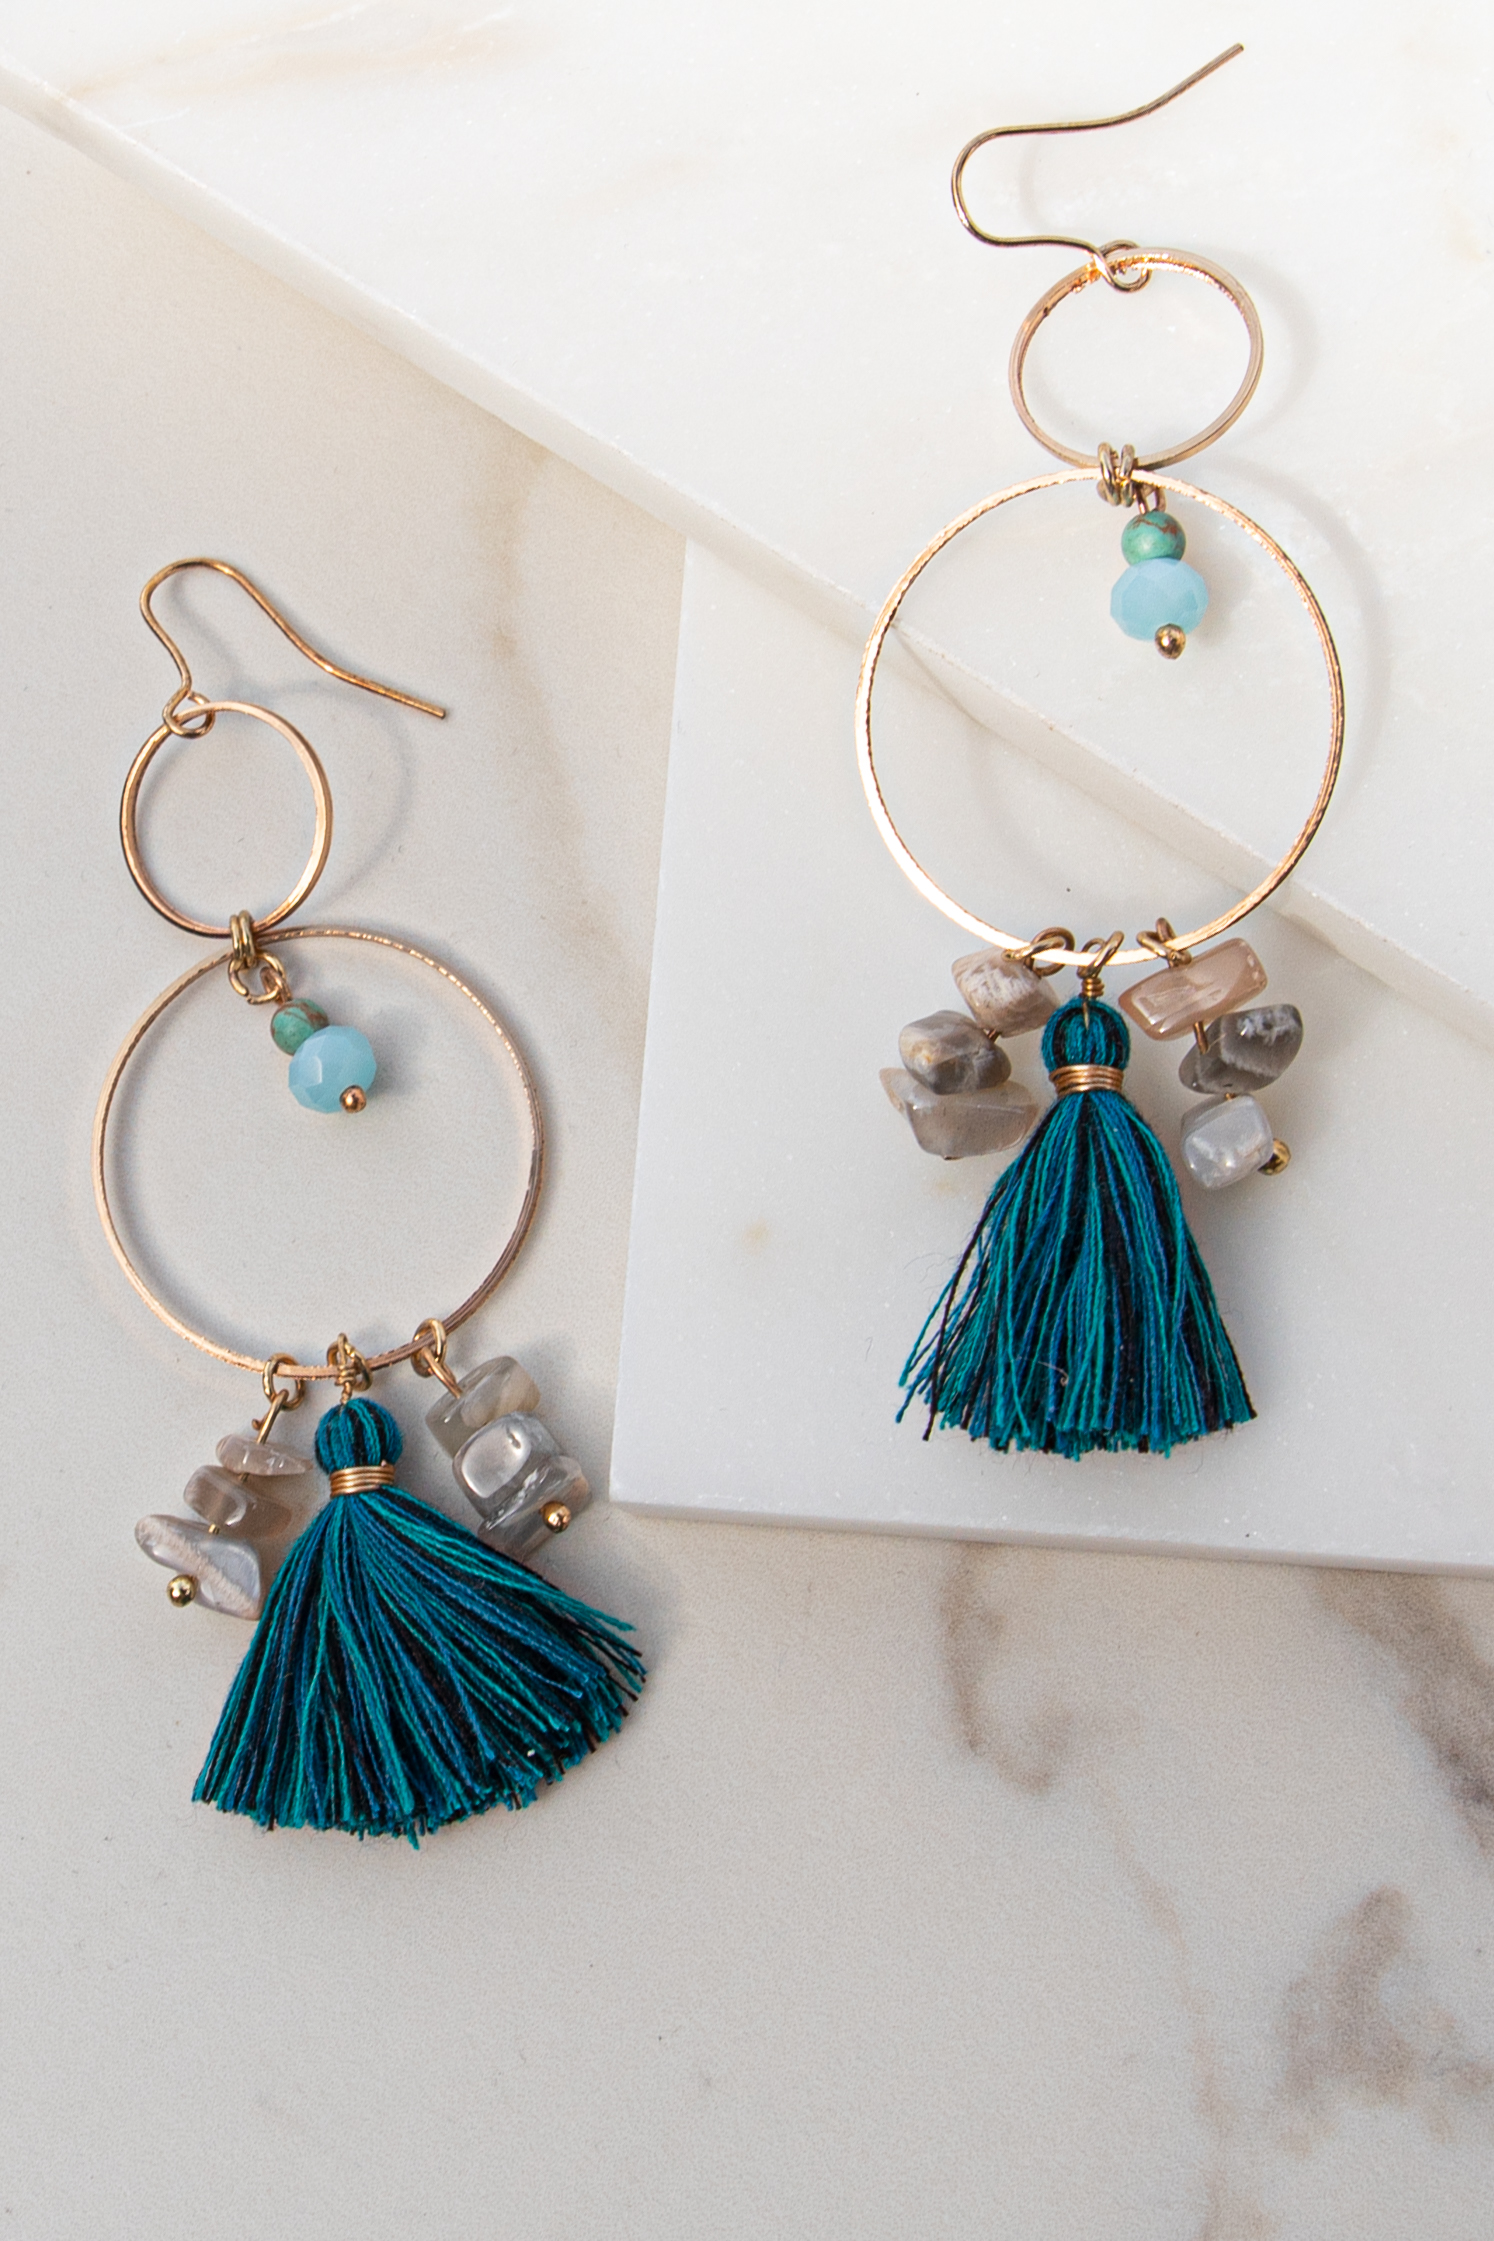 Gold Chandelier Earrings with Stone Beads and Teal Fringe